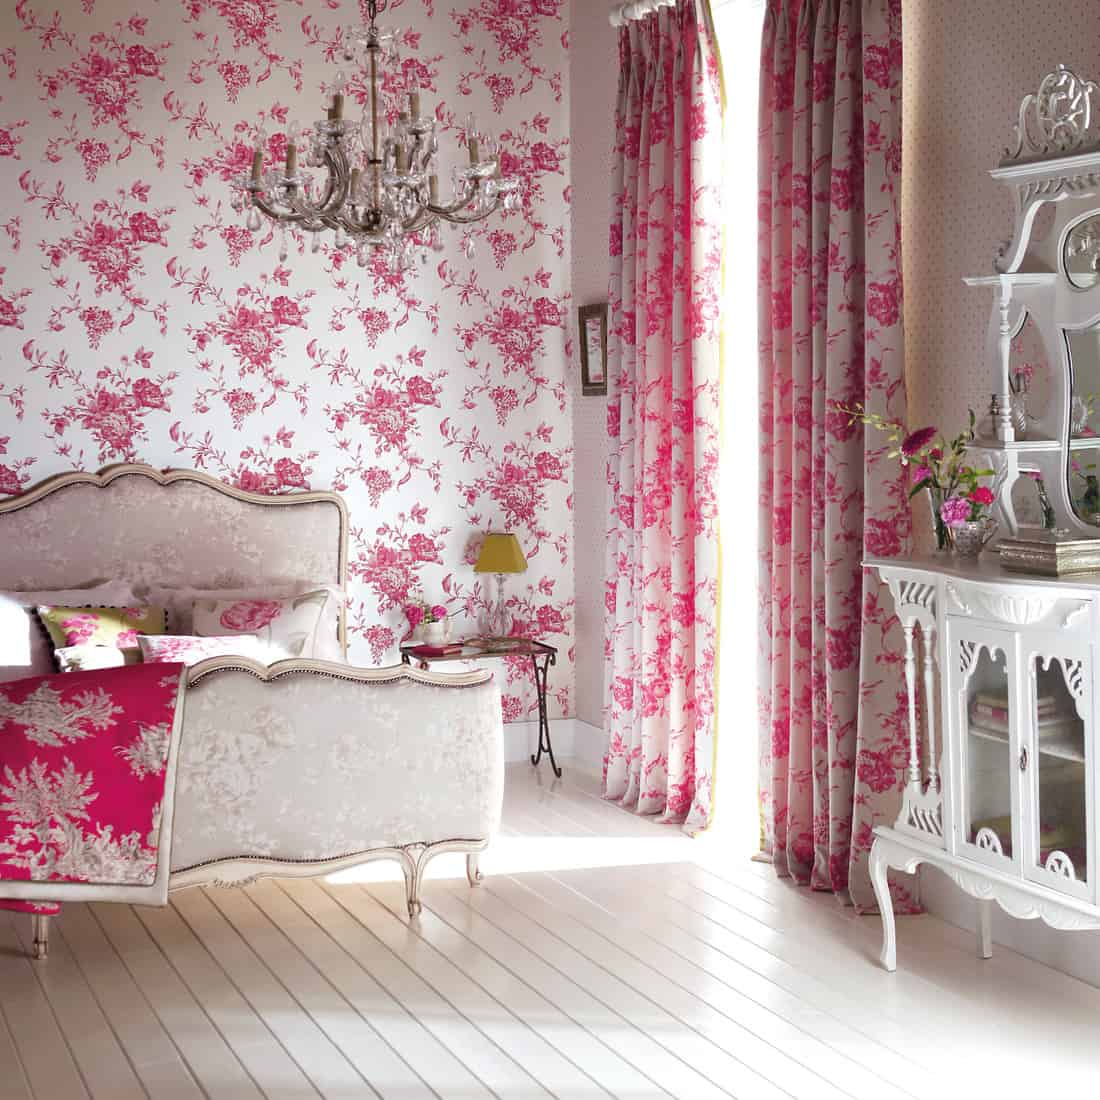 contemporary bedroom with floral pattern wallpaper and curtains with classic style furniture. pretty in pink